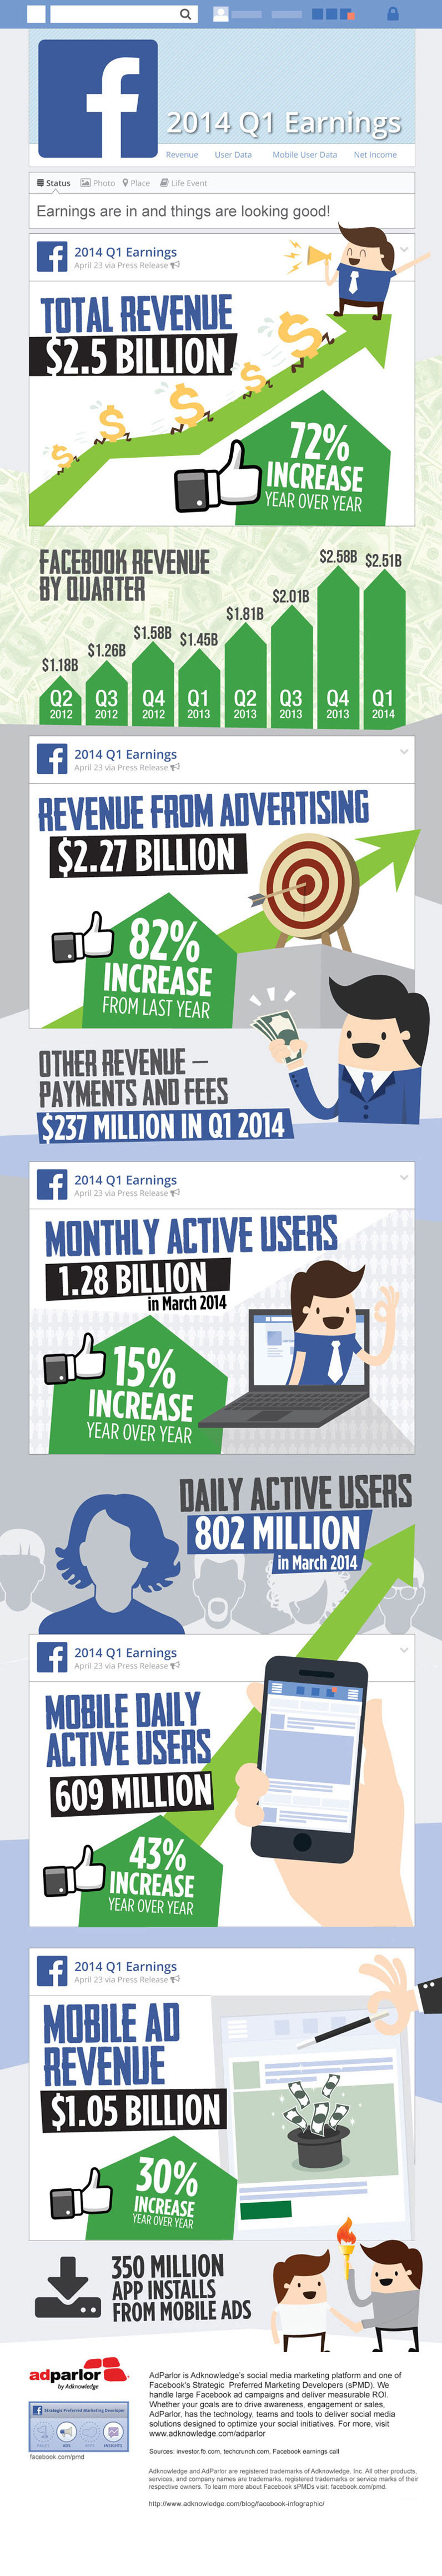 The Facebook Q1 2014 Earnings Infographic: Facebook released its first quarter earnings yesterday and again beat Wall Street expectations. Revenue for the quarter was $2.5 billion with user and usage numbers also on the rise.